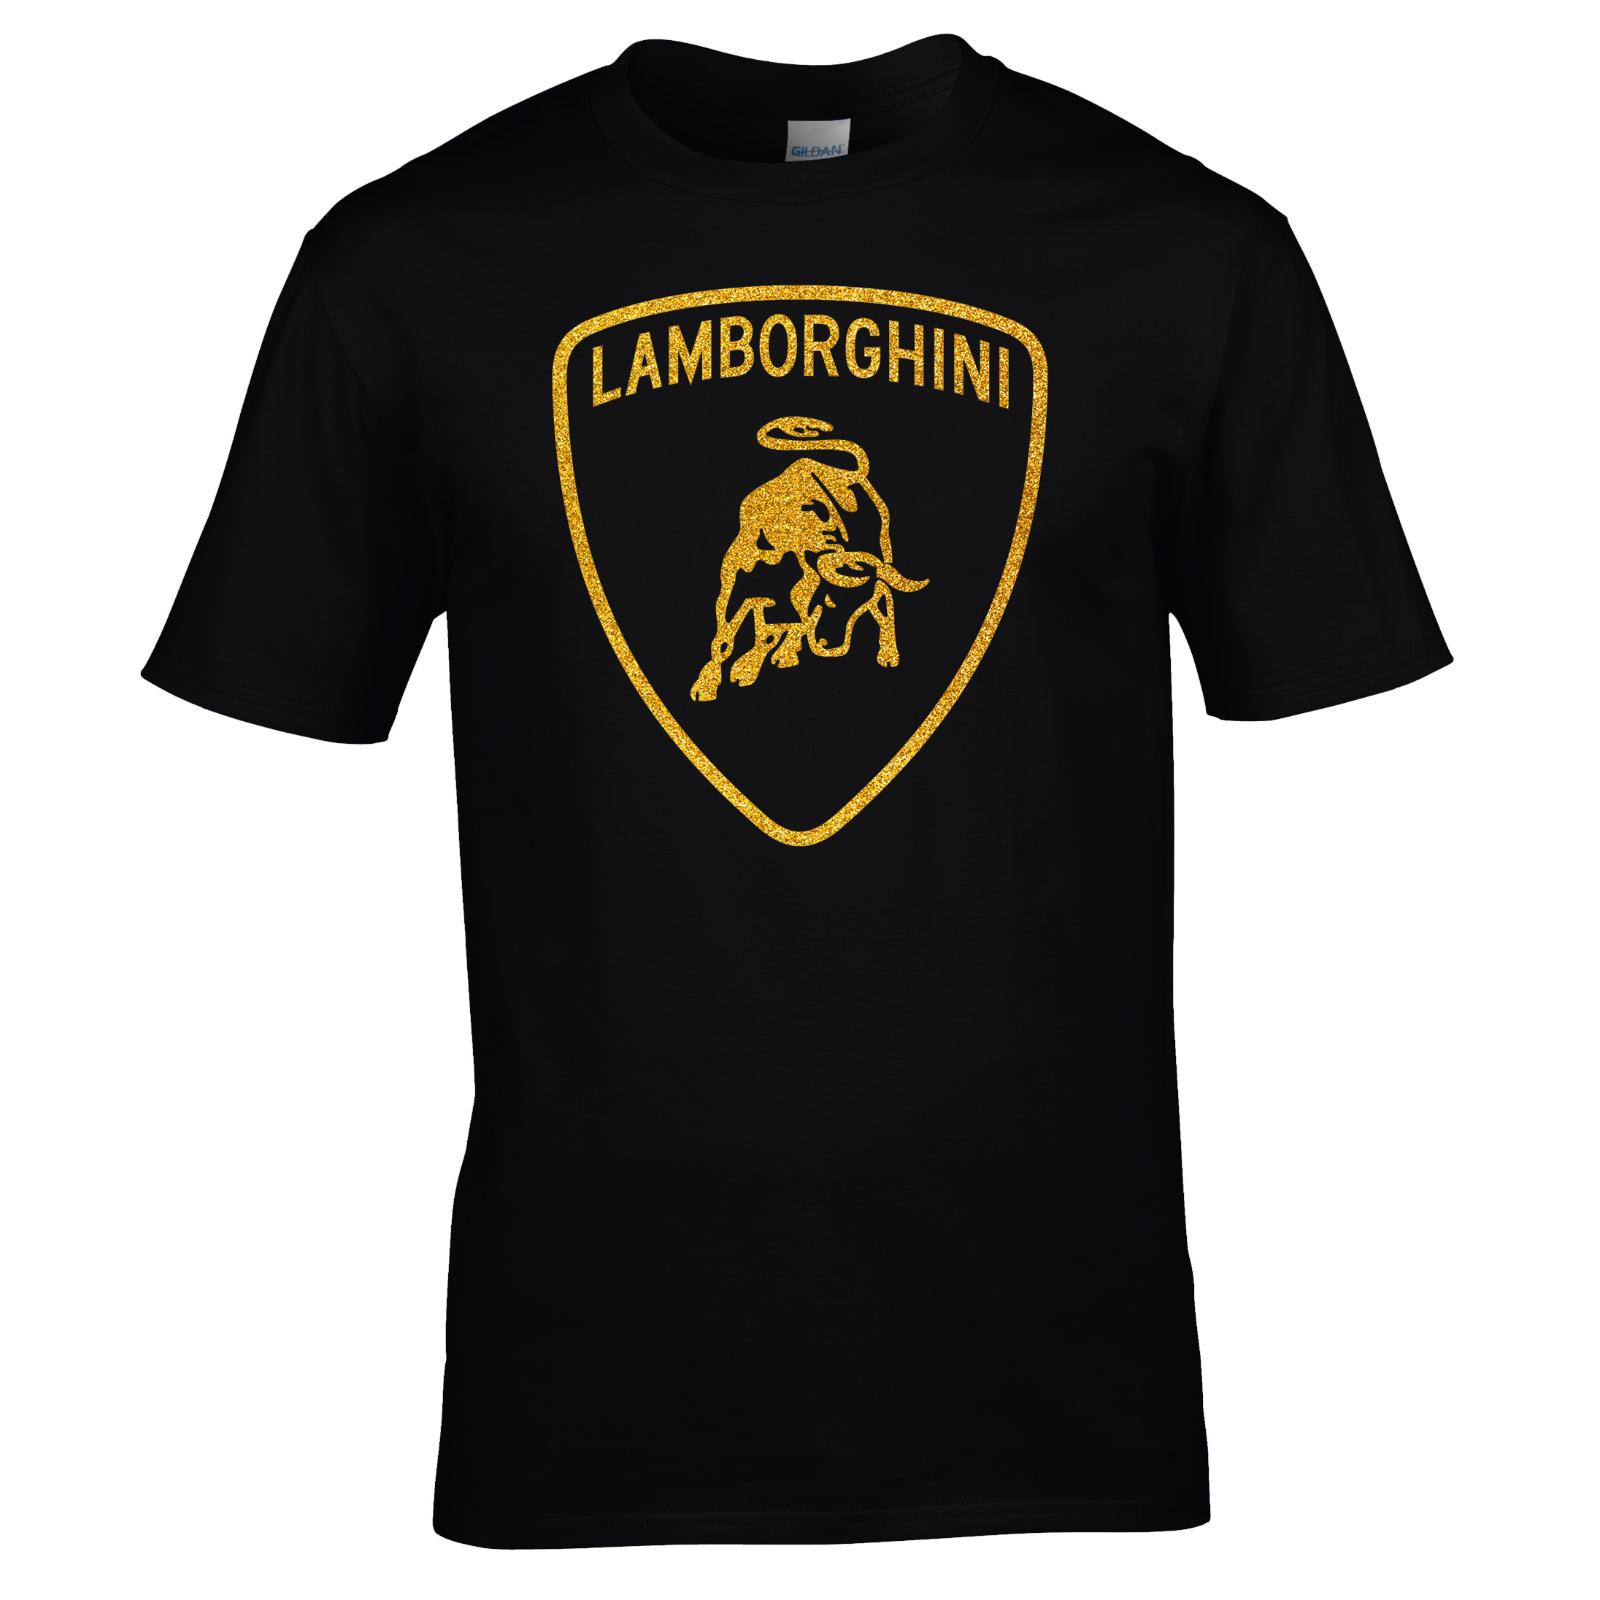 Men;S T Shirt Shirt Premium Quality Gold Glitter Vinyl Lamborghini T Shirts  Short Sleeve Leisure Fashion Summer Short Sleeve Cool Casual One Day Only T  ...